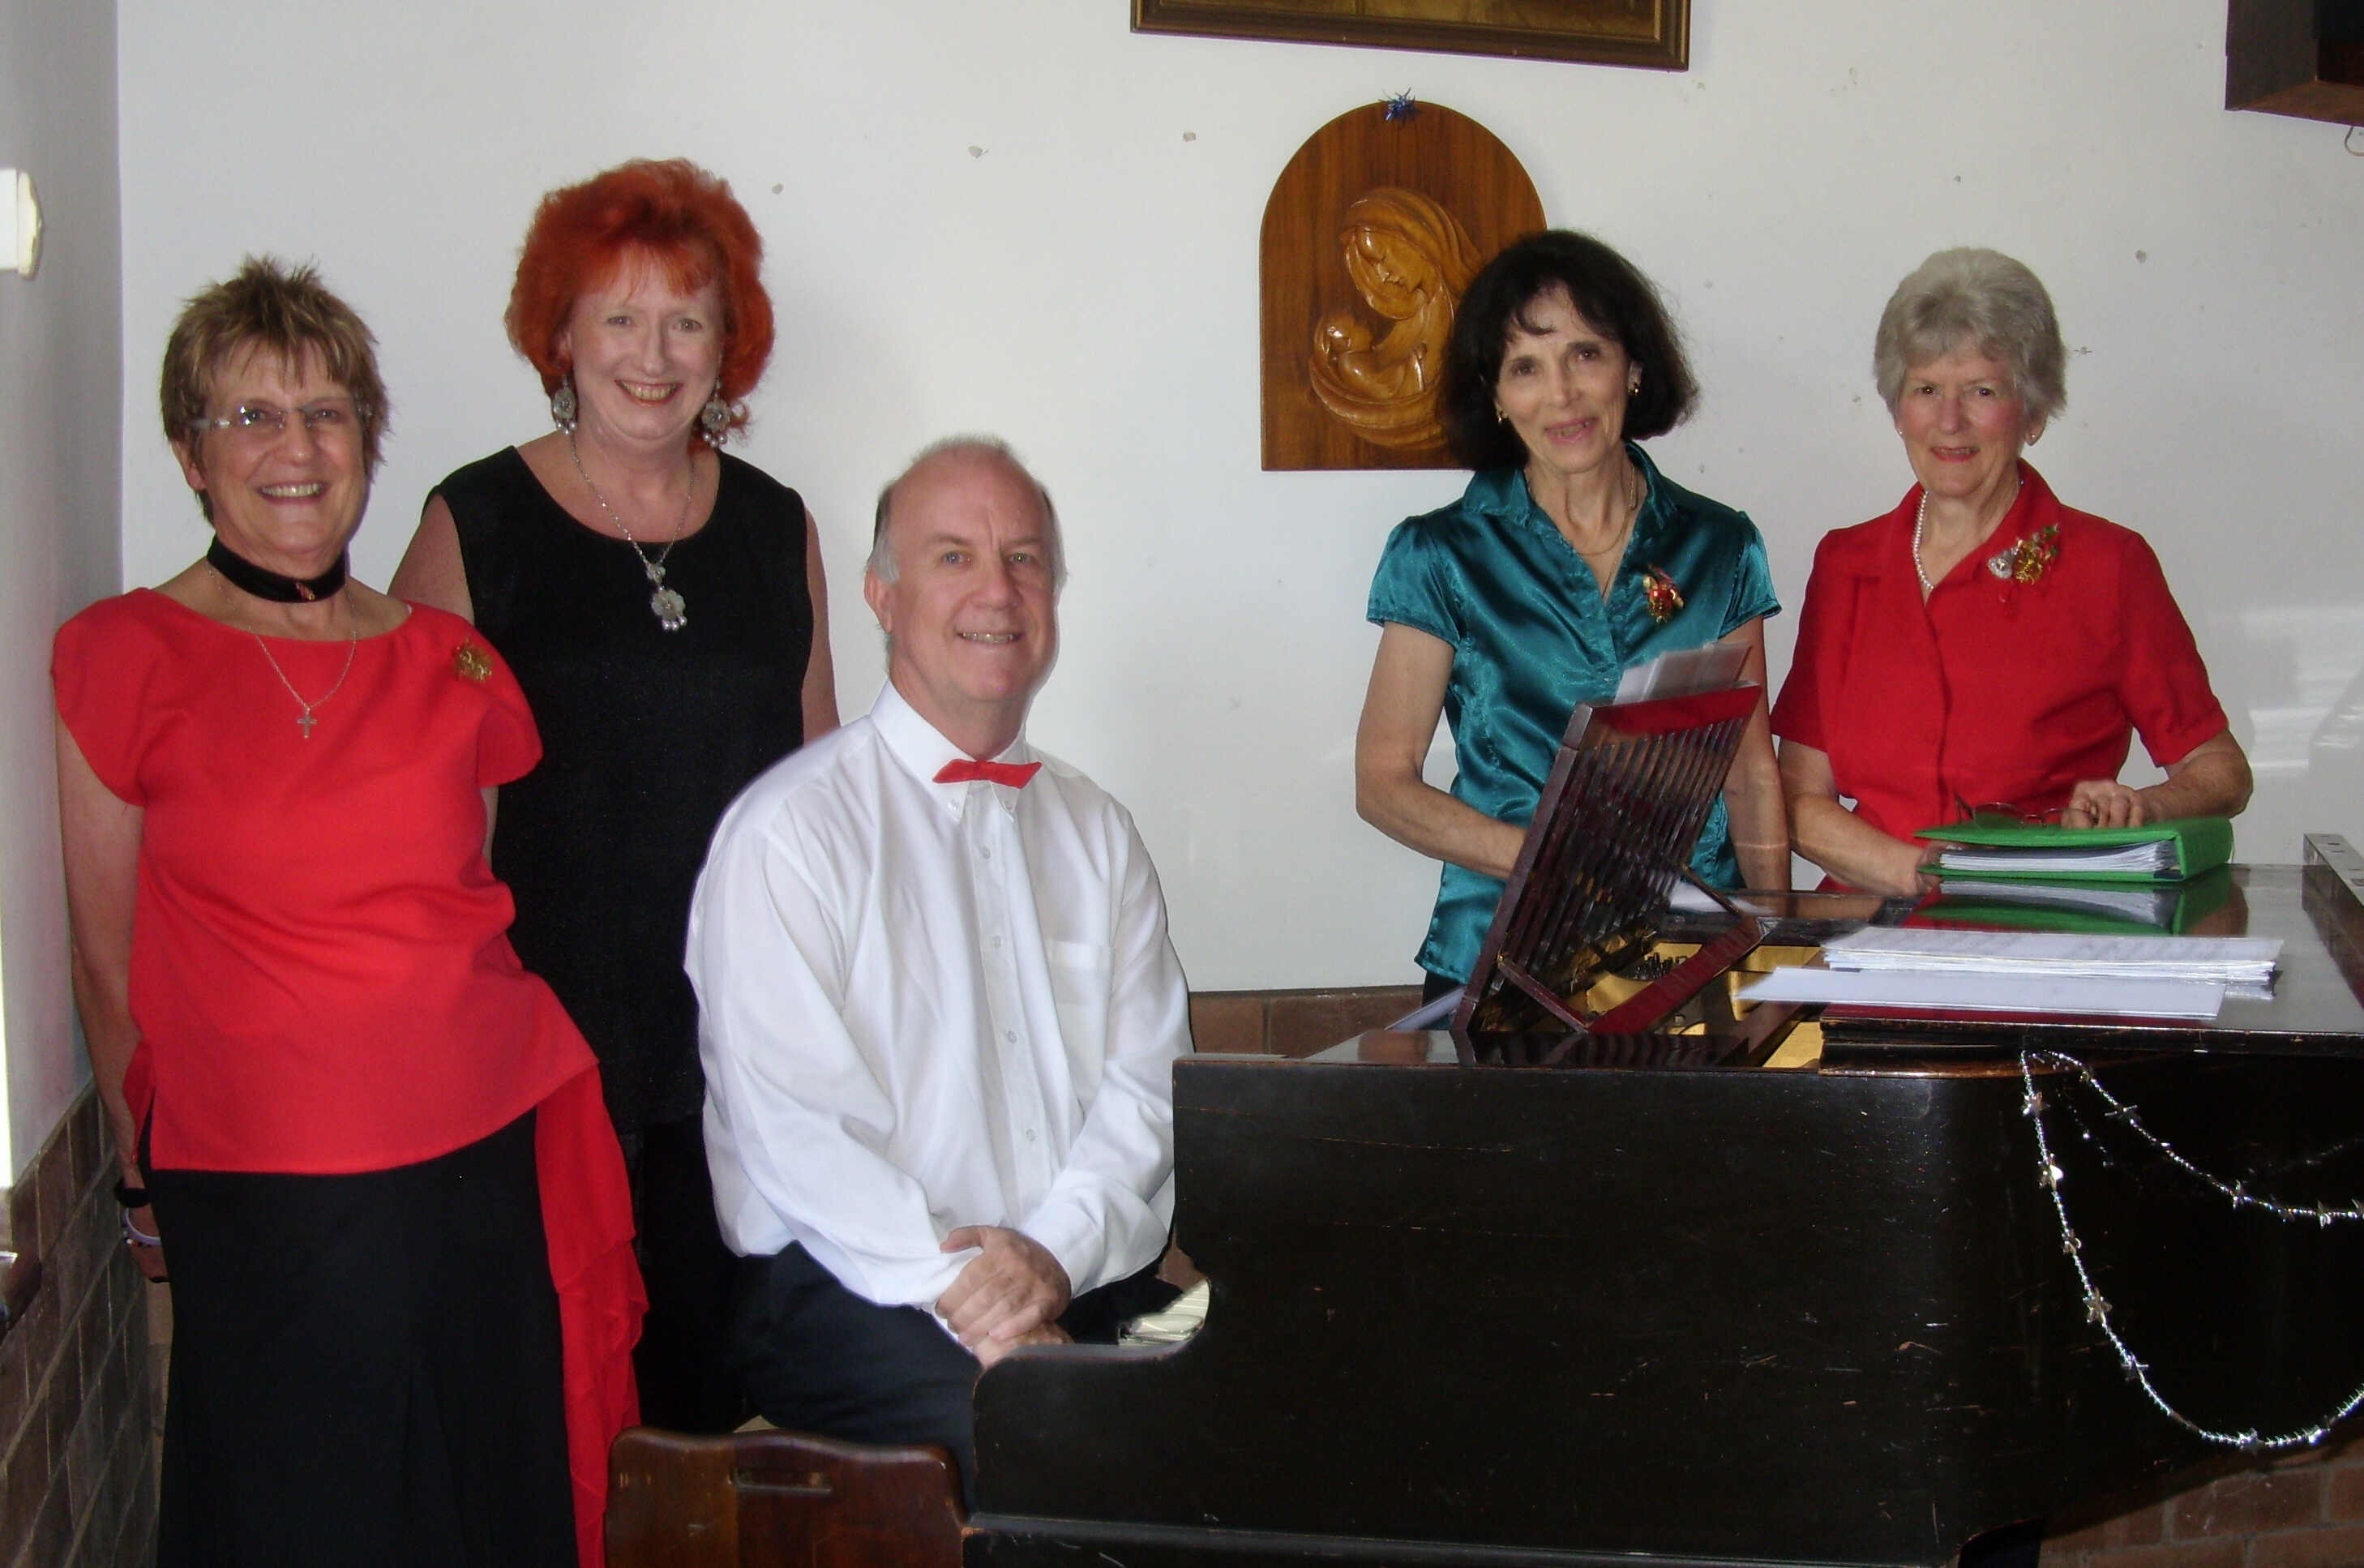 Some of the Maritzburg Singers in rehearsal. From the left:Julie Young, Helen Vermaak, Nigel Fish, Joan Quayle and Sarie Hasell